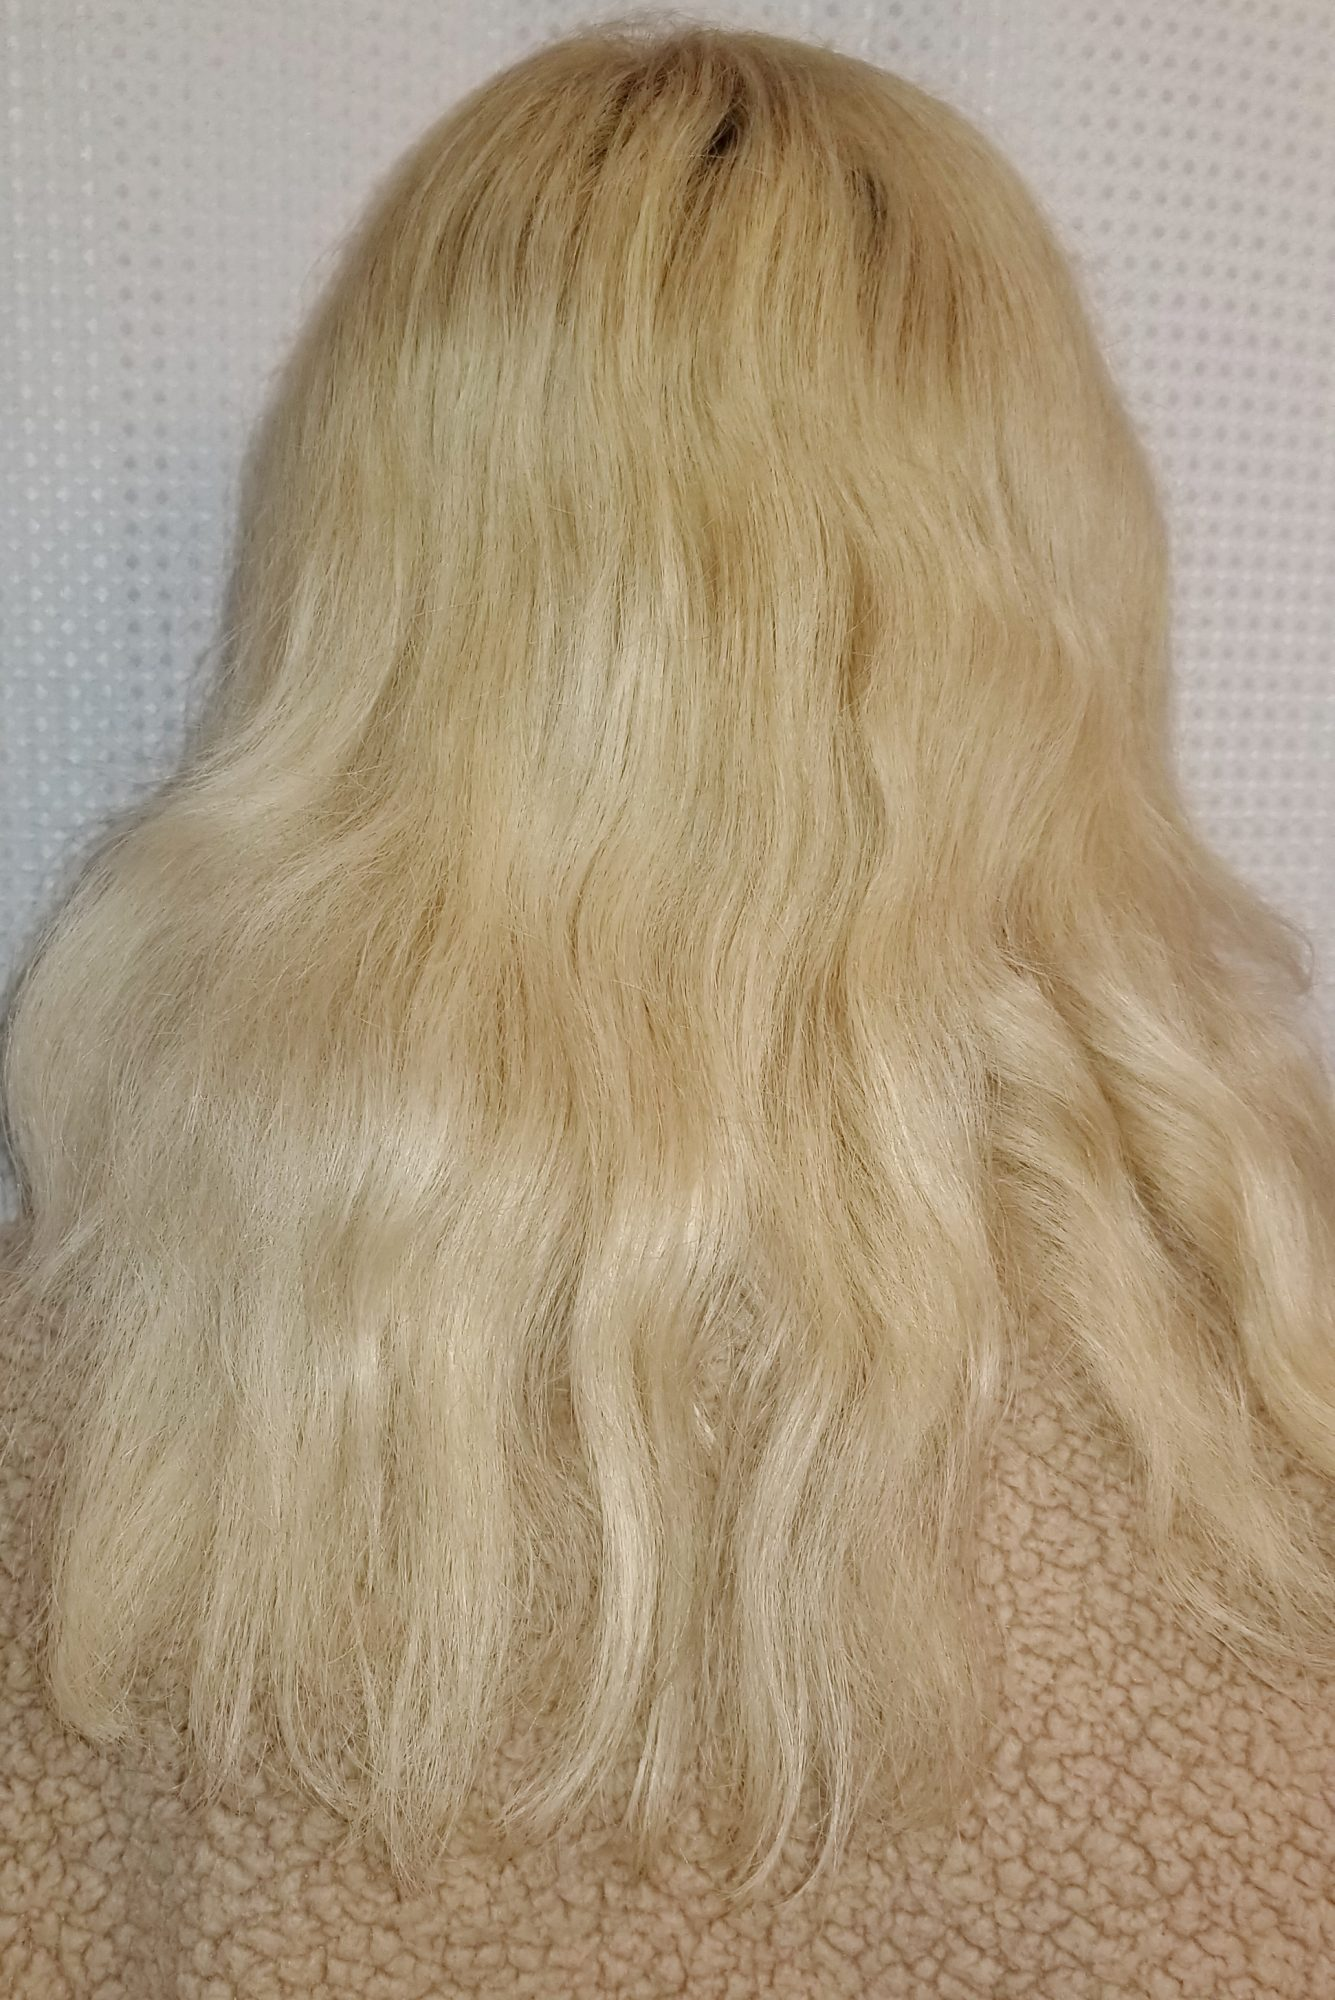 Hair after photo